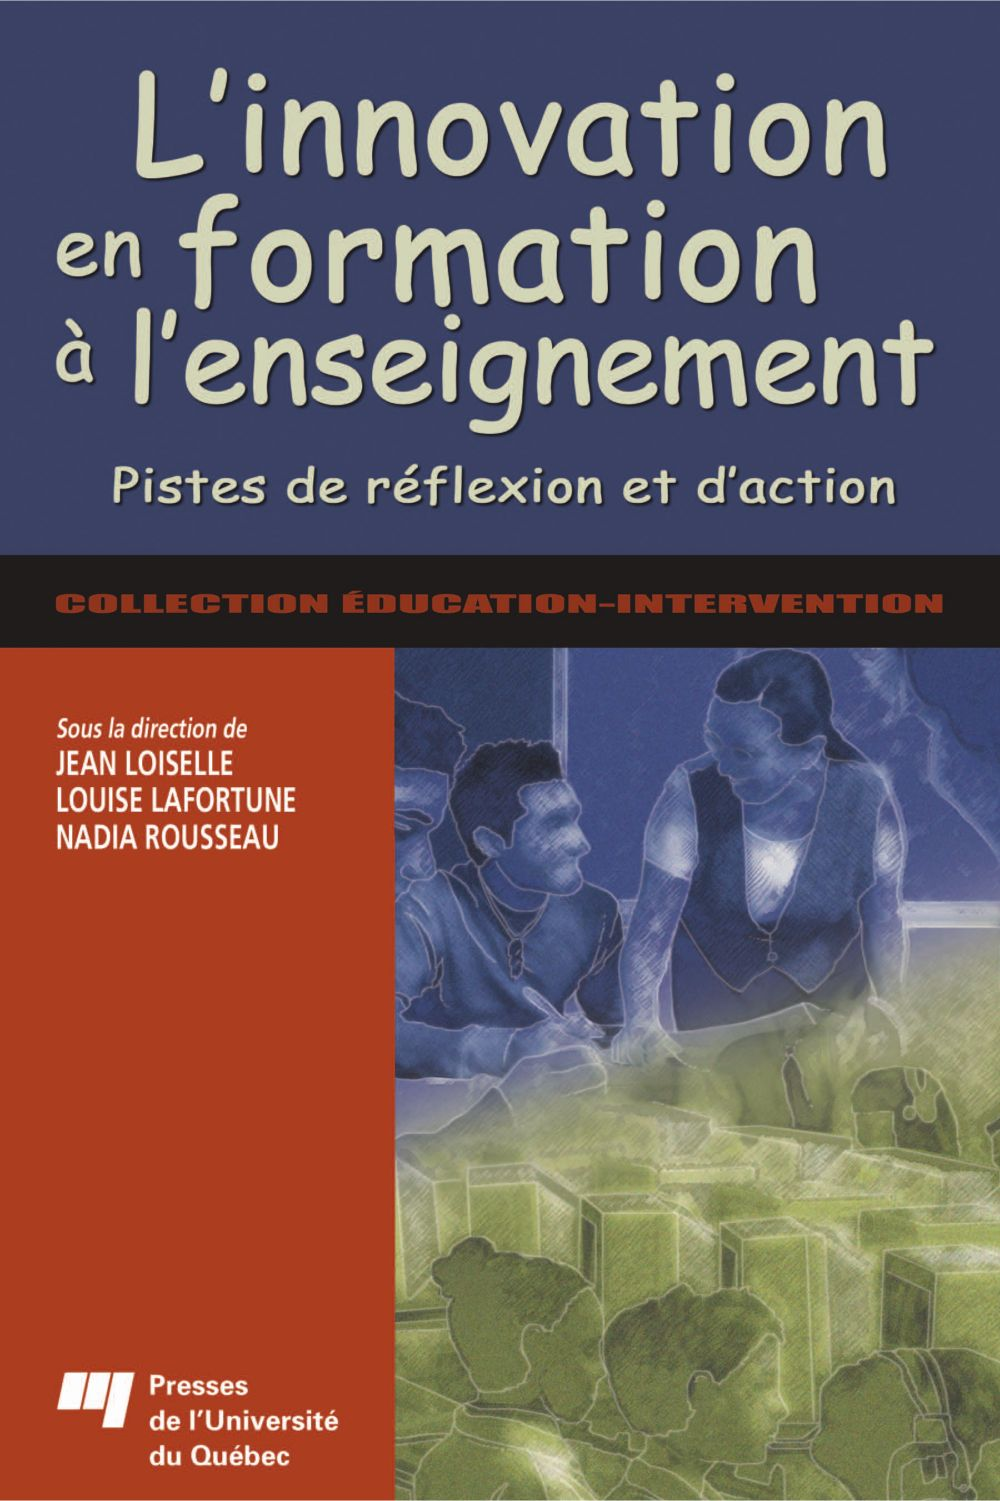 L'innovation en formation à l'enseignement